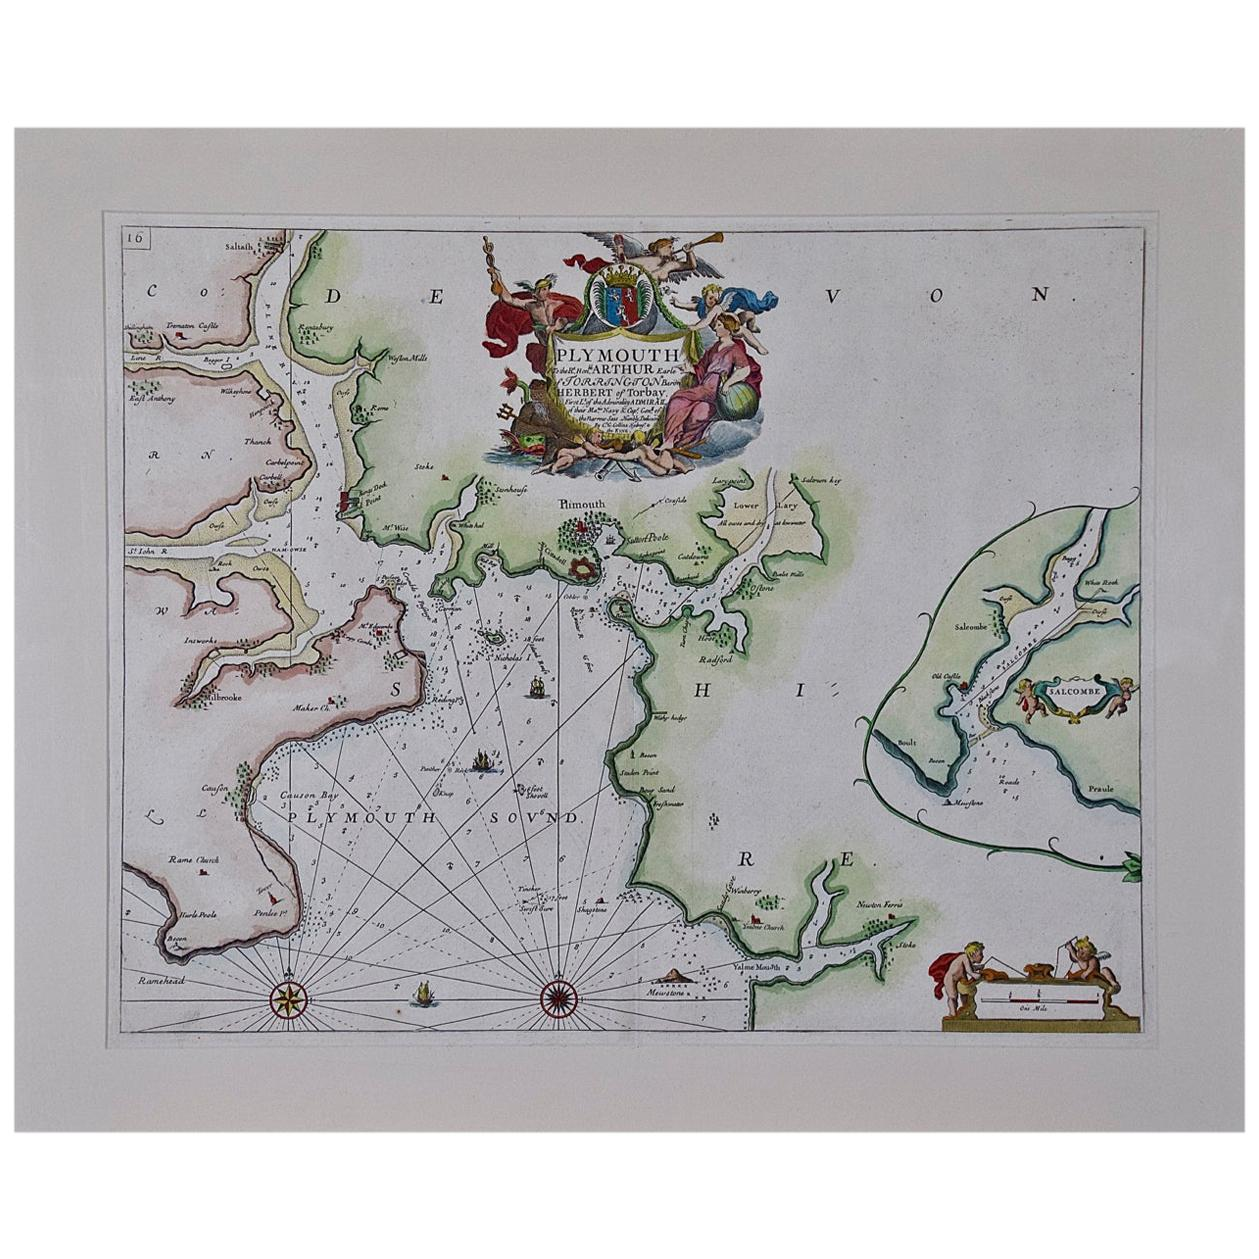 Hand-Colored 17th Century Sea Chart of Plymouth, England by Captain Collins